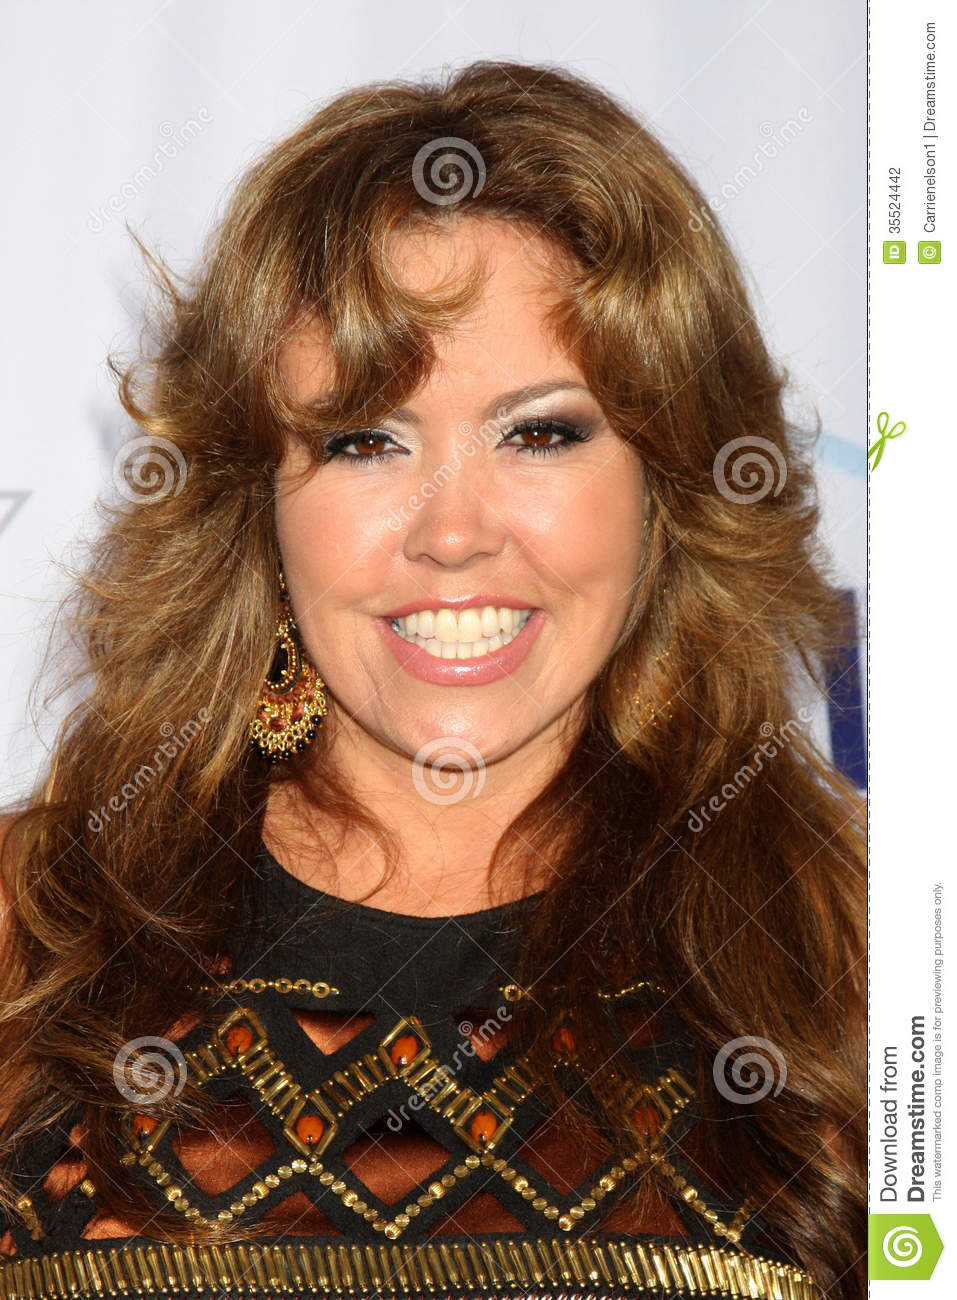 <b>Mary Murphy</b> Photographie éditorial - mary-murphy-35524442